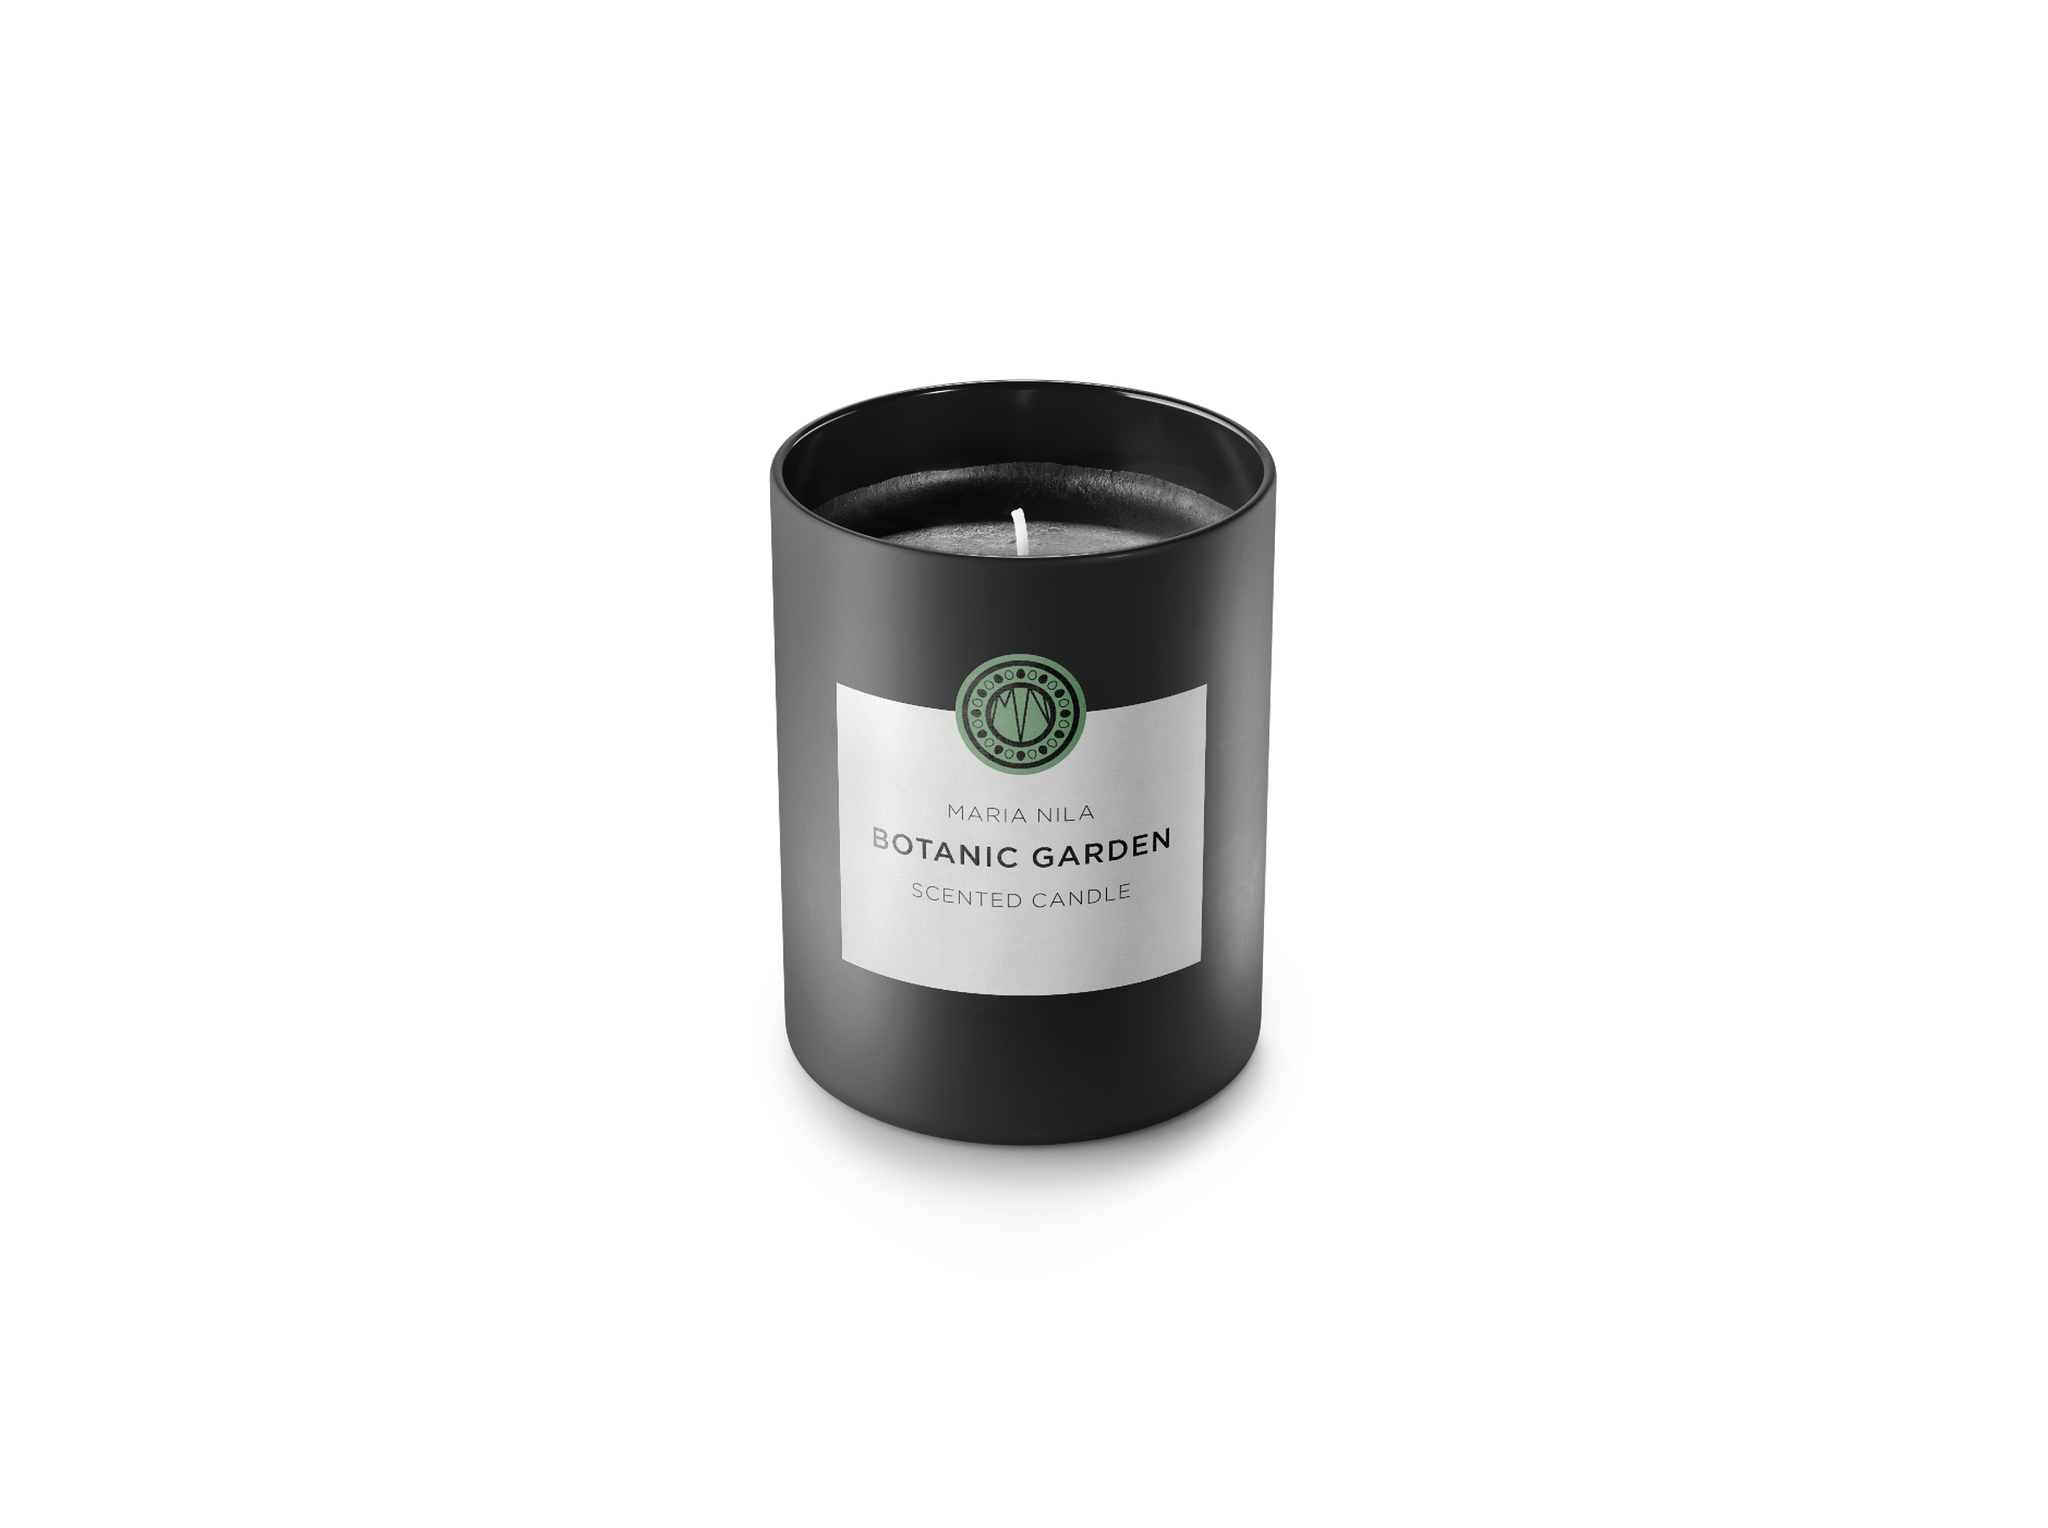 Maria Nila Scented Candles